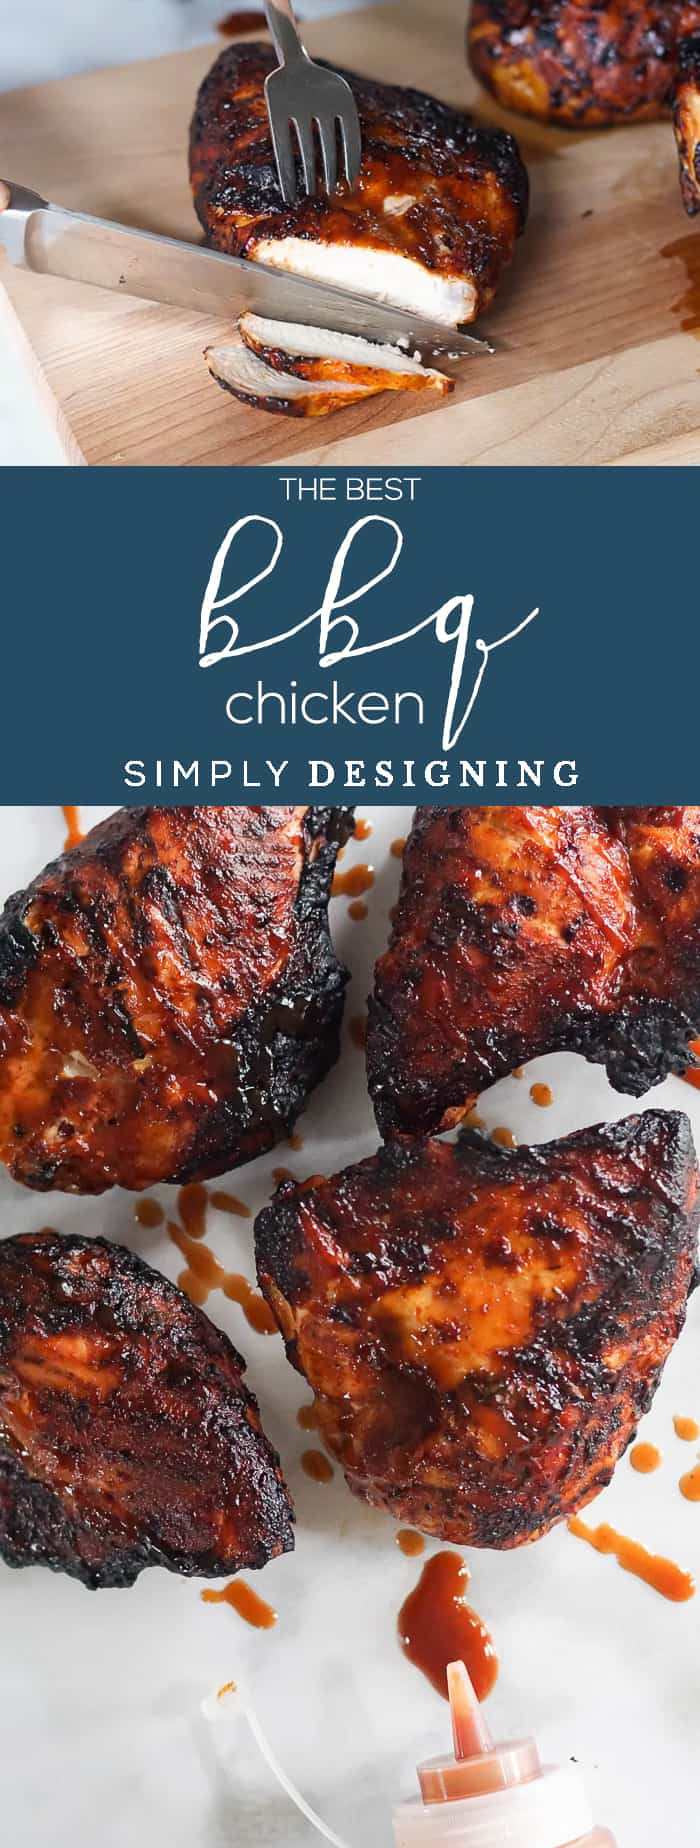 The BEST BBQ Chicken - this grilled chicken recipe is full of delicious bbq flavor and is so easy to make